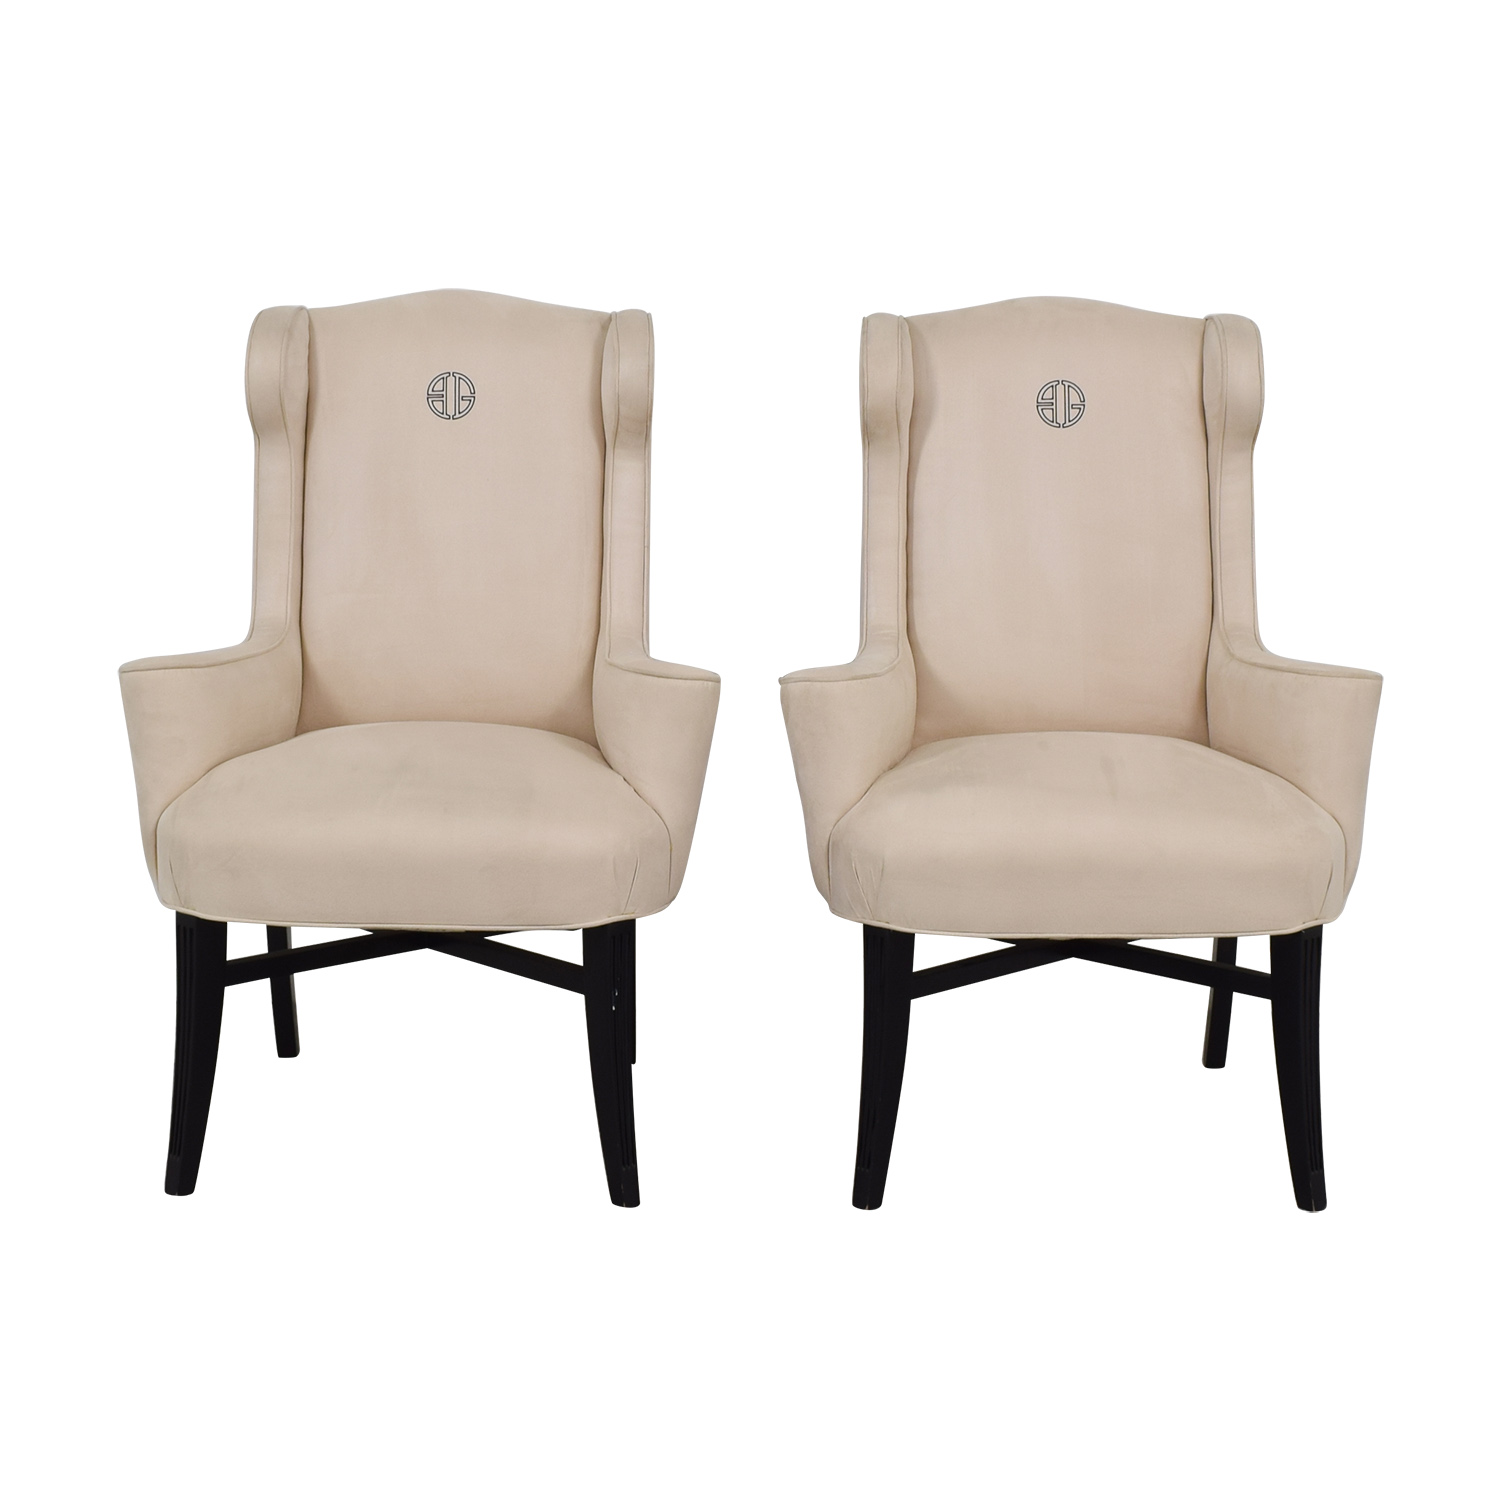 Furniture Masters Furniture Masters Cream Club Chairs second hand